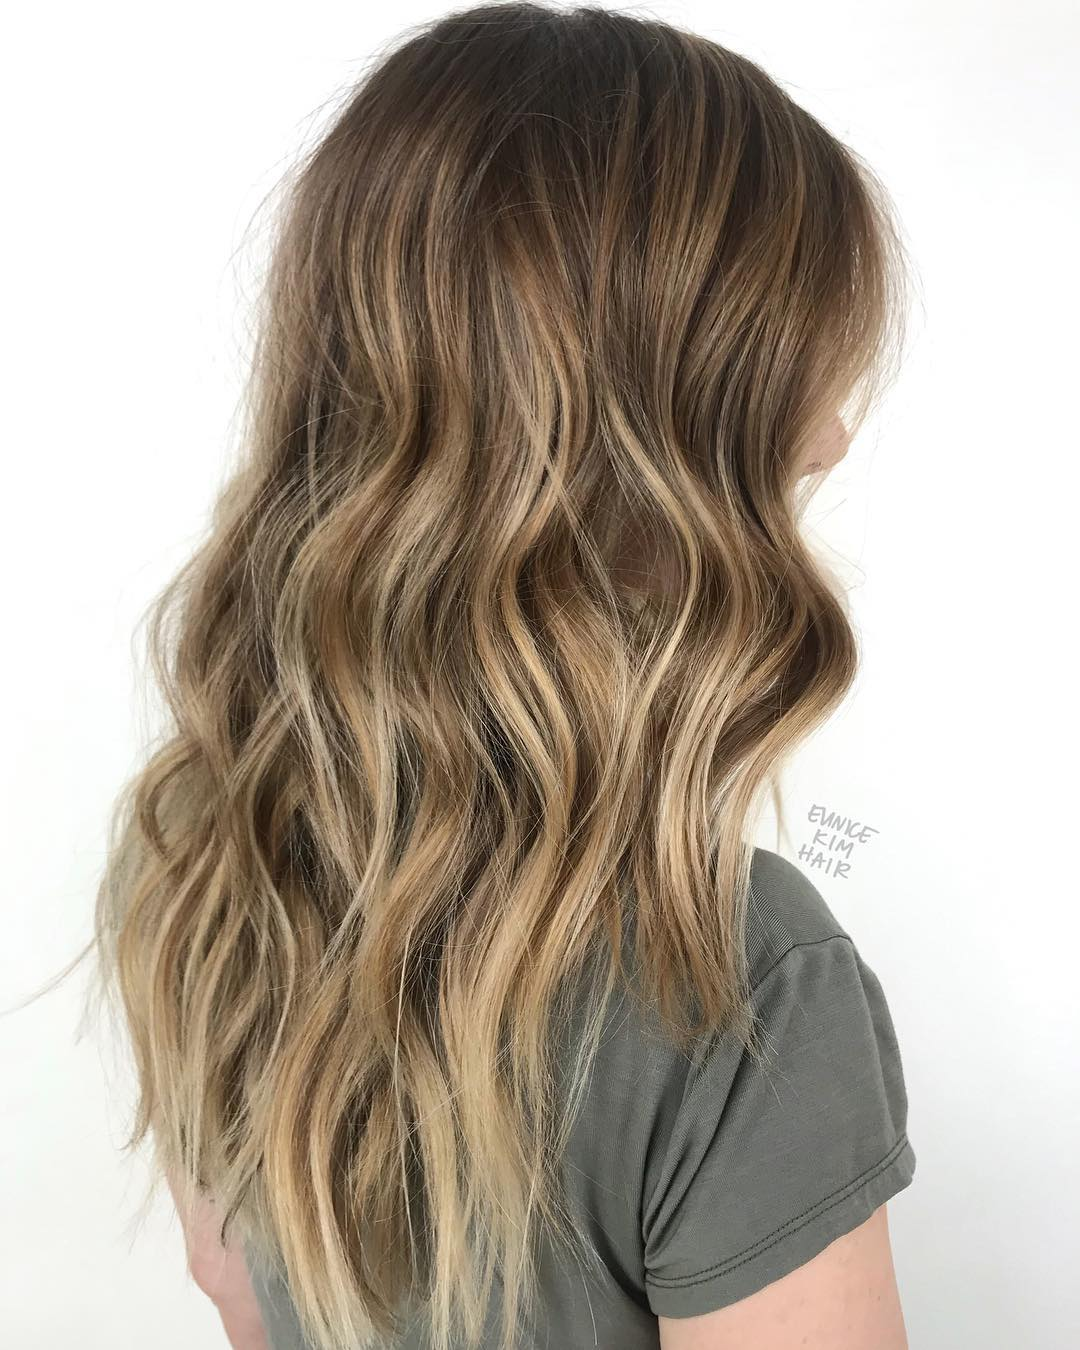 Wavy Brown Hair with Thick Blonde Highlights